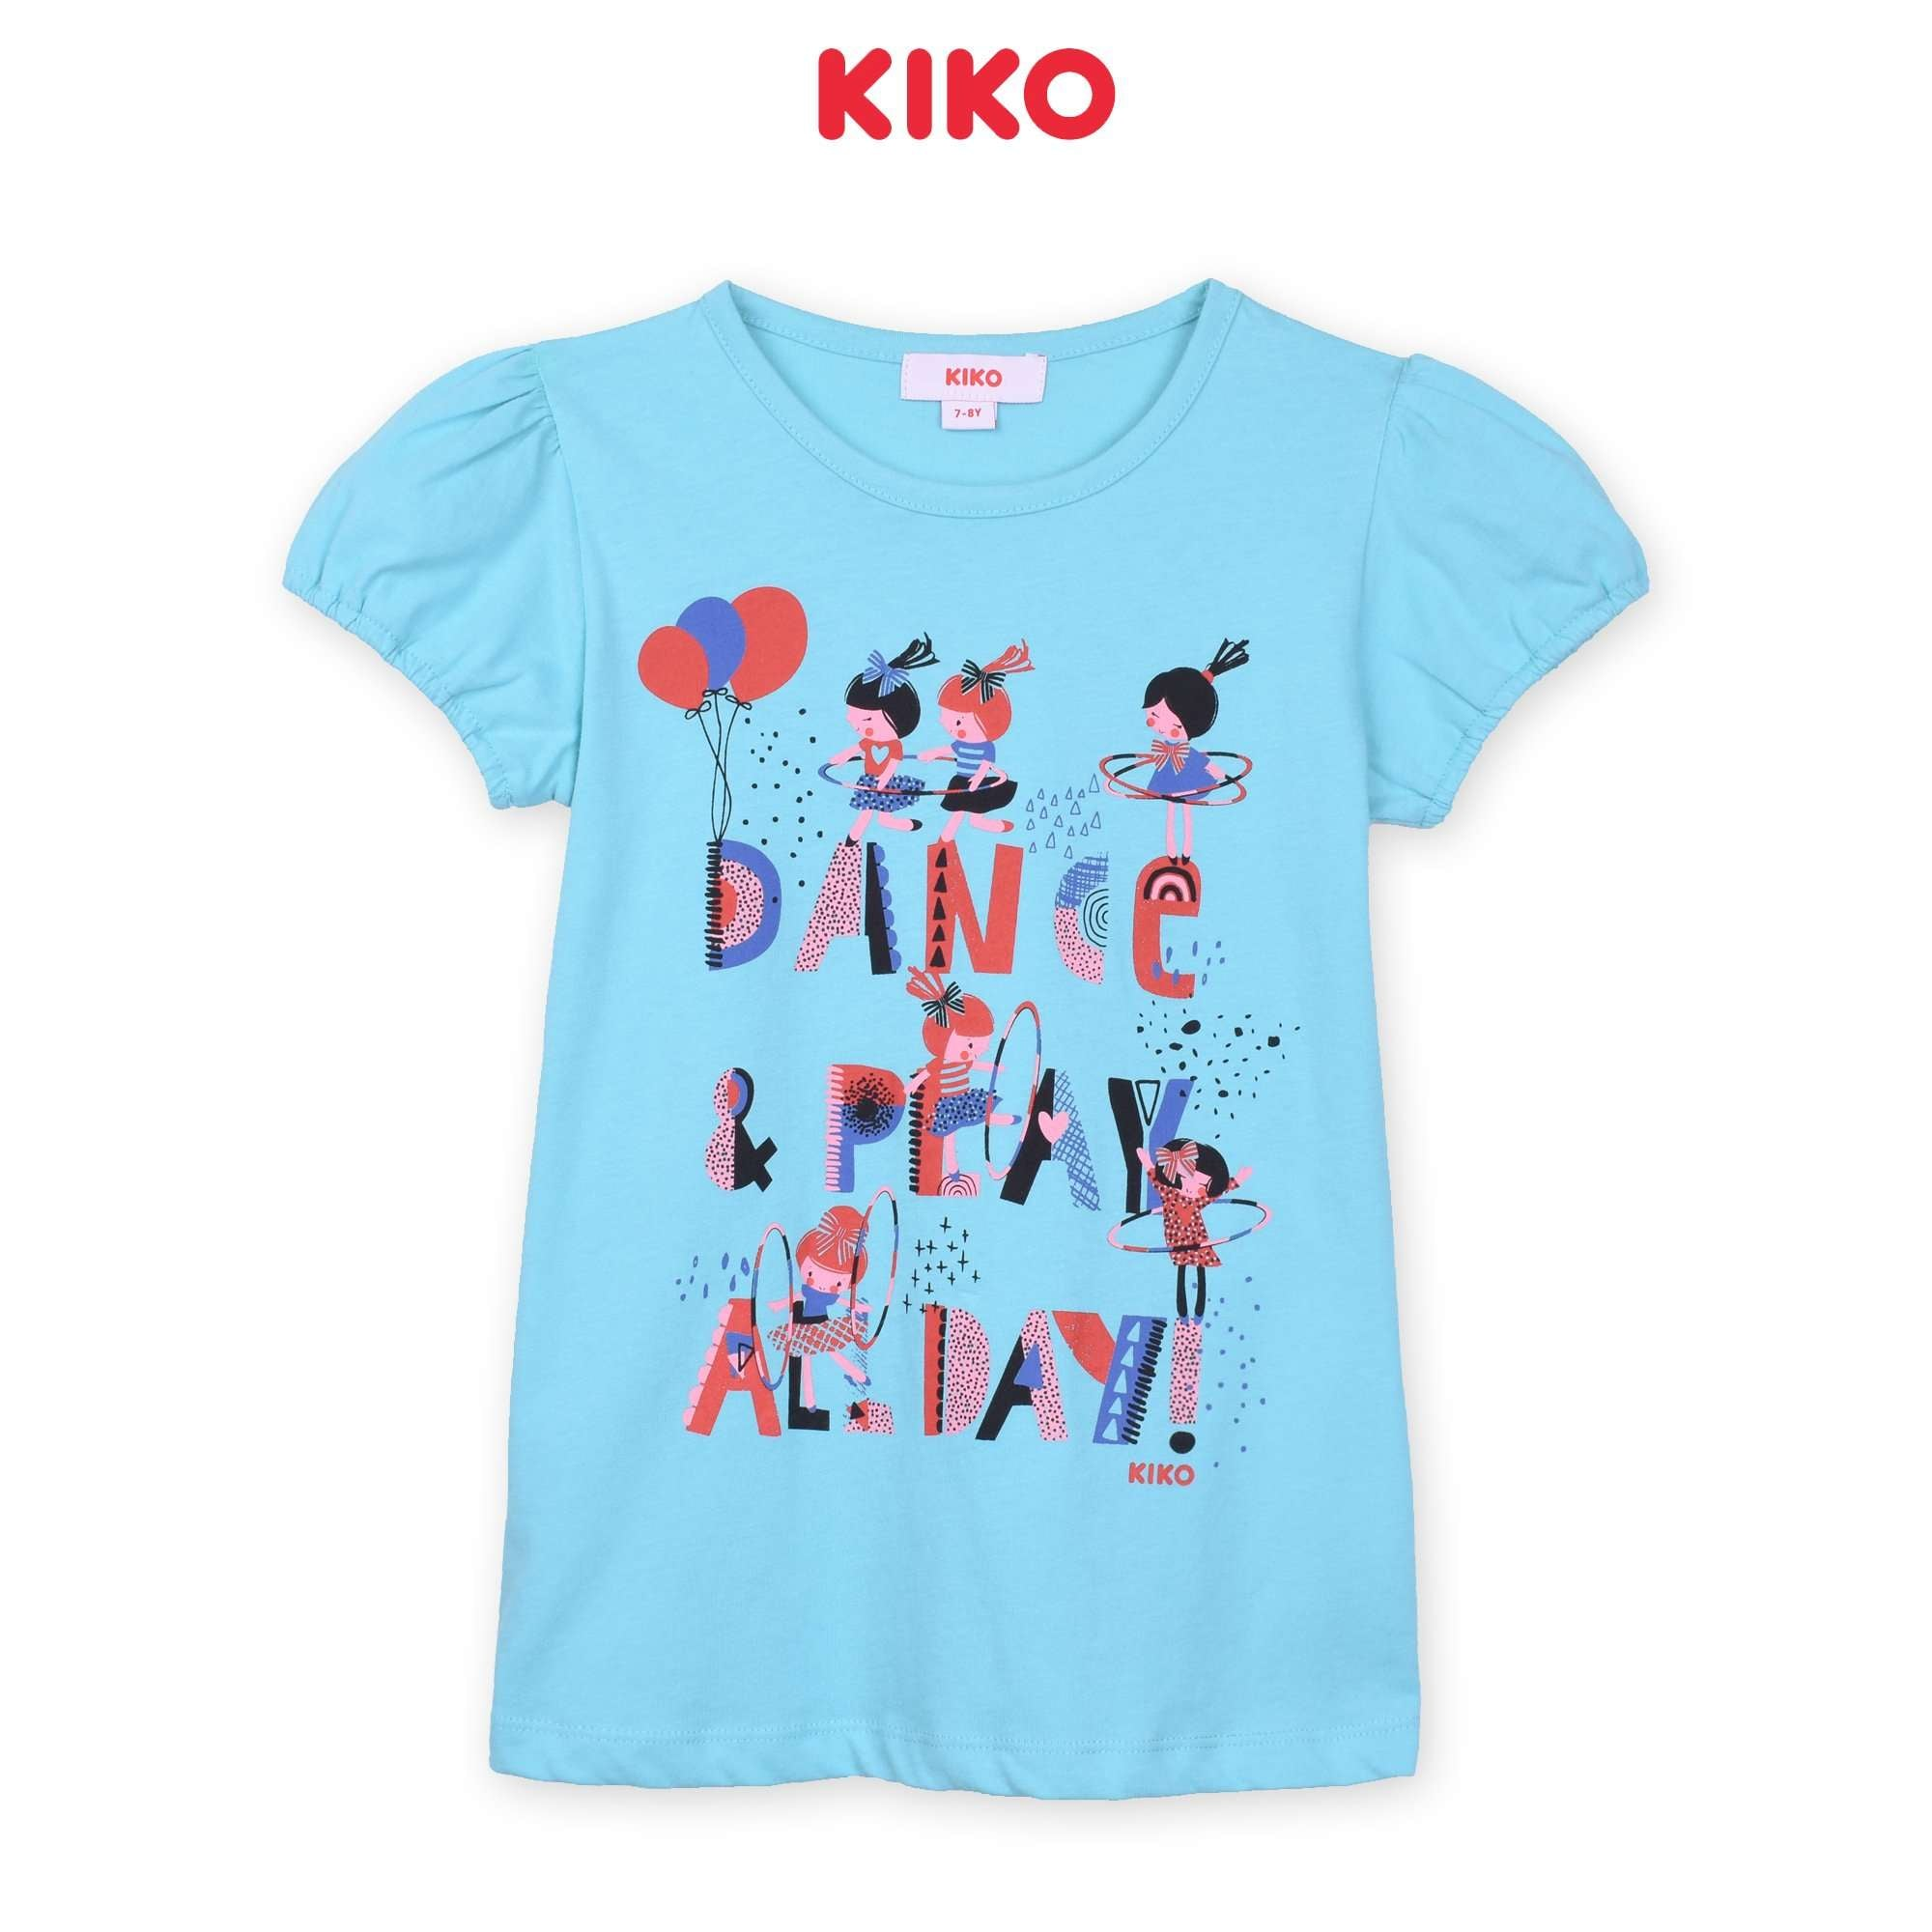 KIKO Girl Short Sleeve Tee - Blue K926103-1133-L5 : Buy KIKO online at CMG.MY